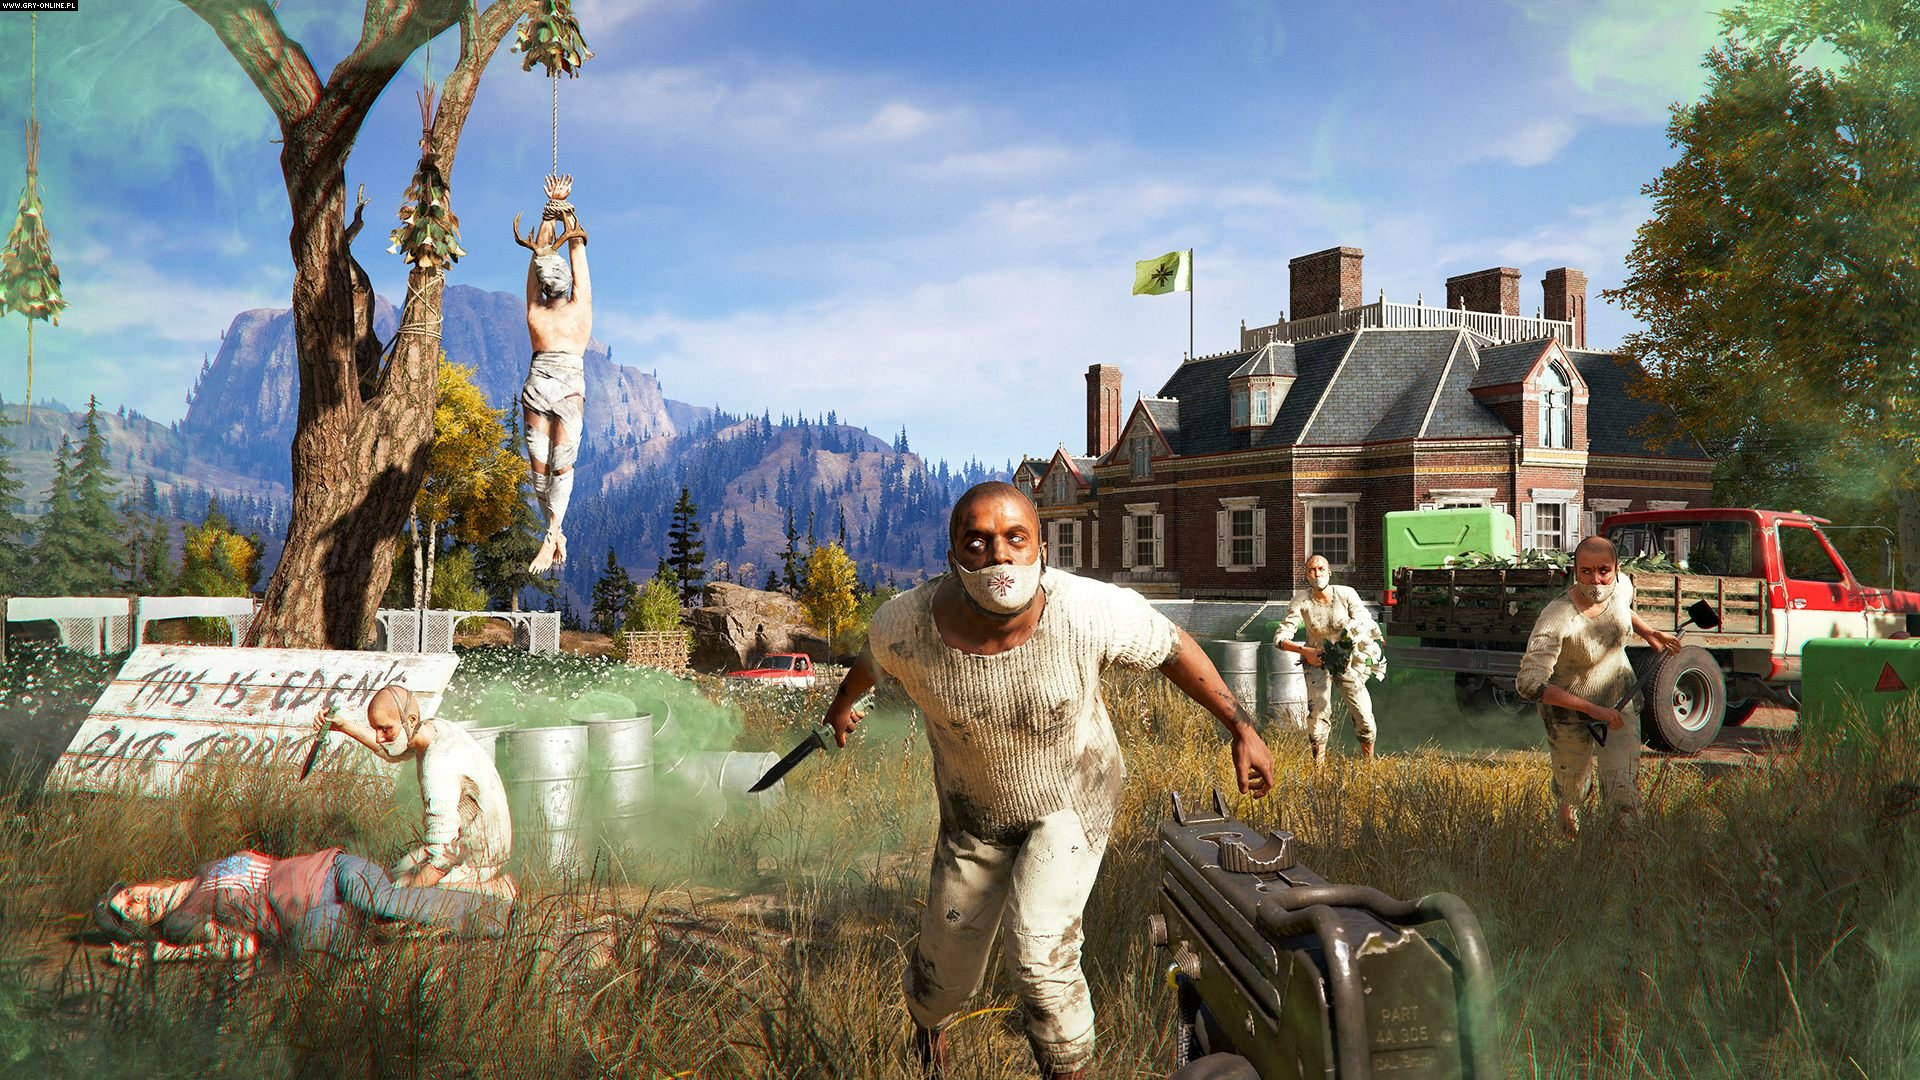 Far Cry 5 PC, PS4, XONE Gry Screen 5/38, Ubisoft